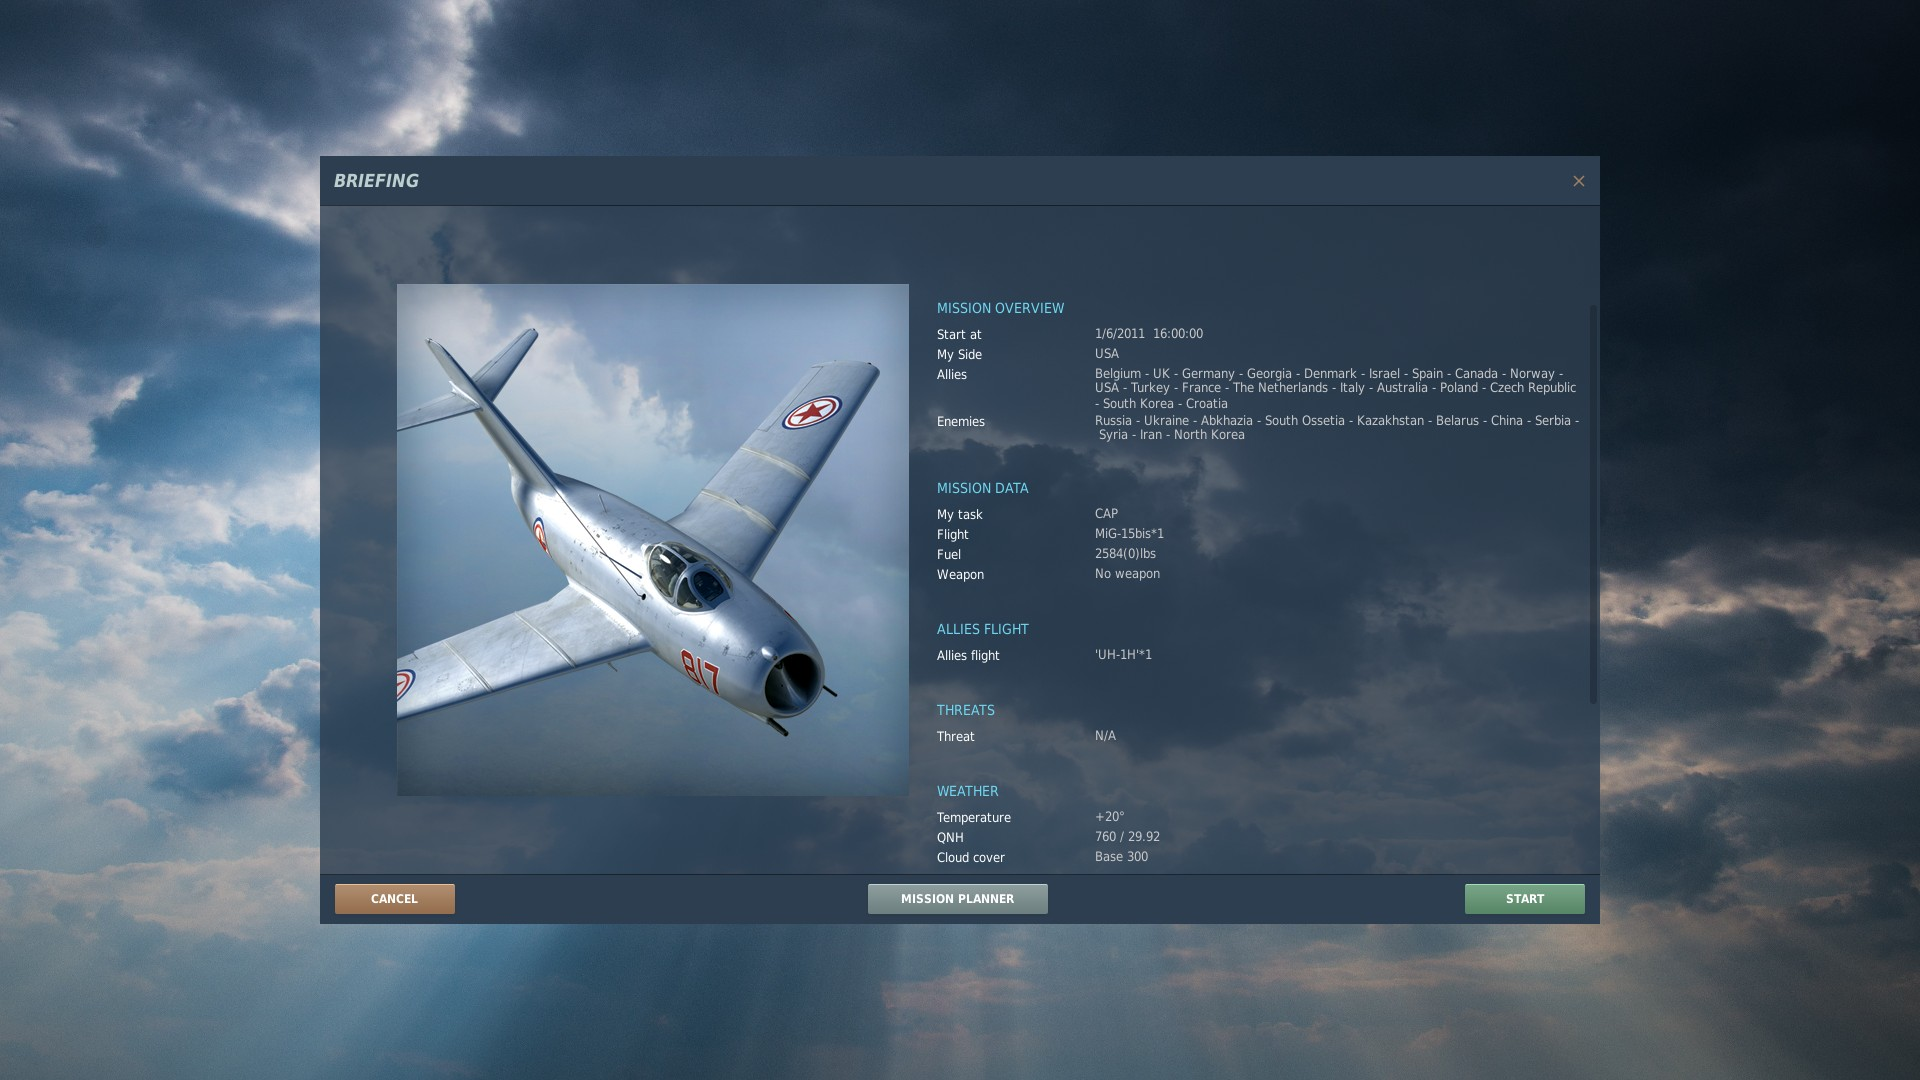 Dcs world 21 update screens screens aars mudspike forums screen170526134235g1920x1080 239 kb gumiabroncs Image collections